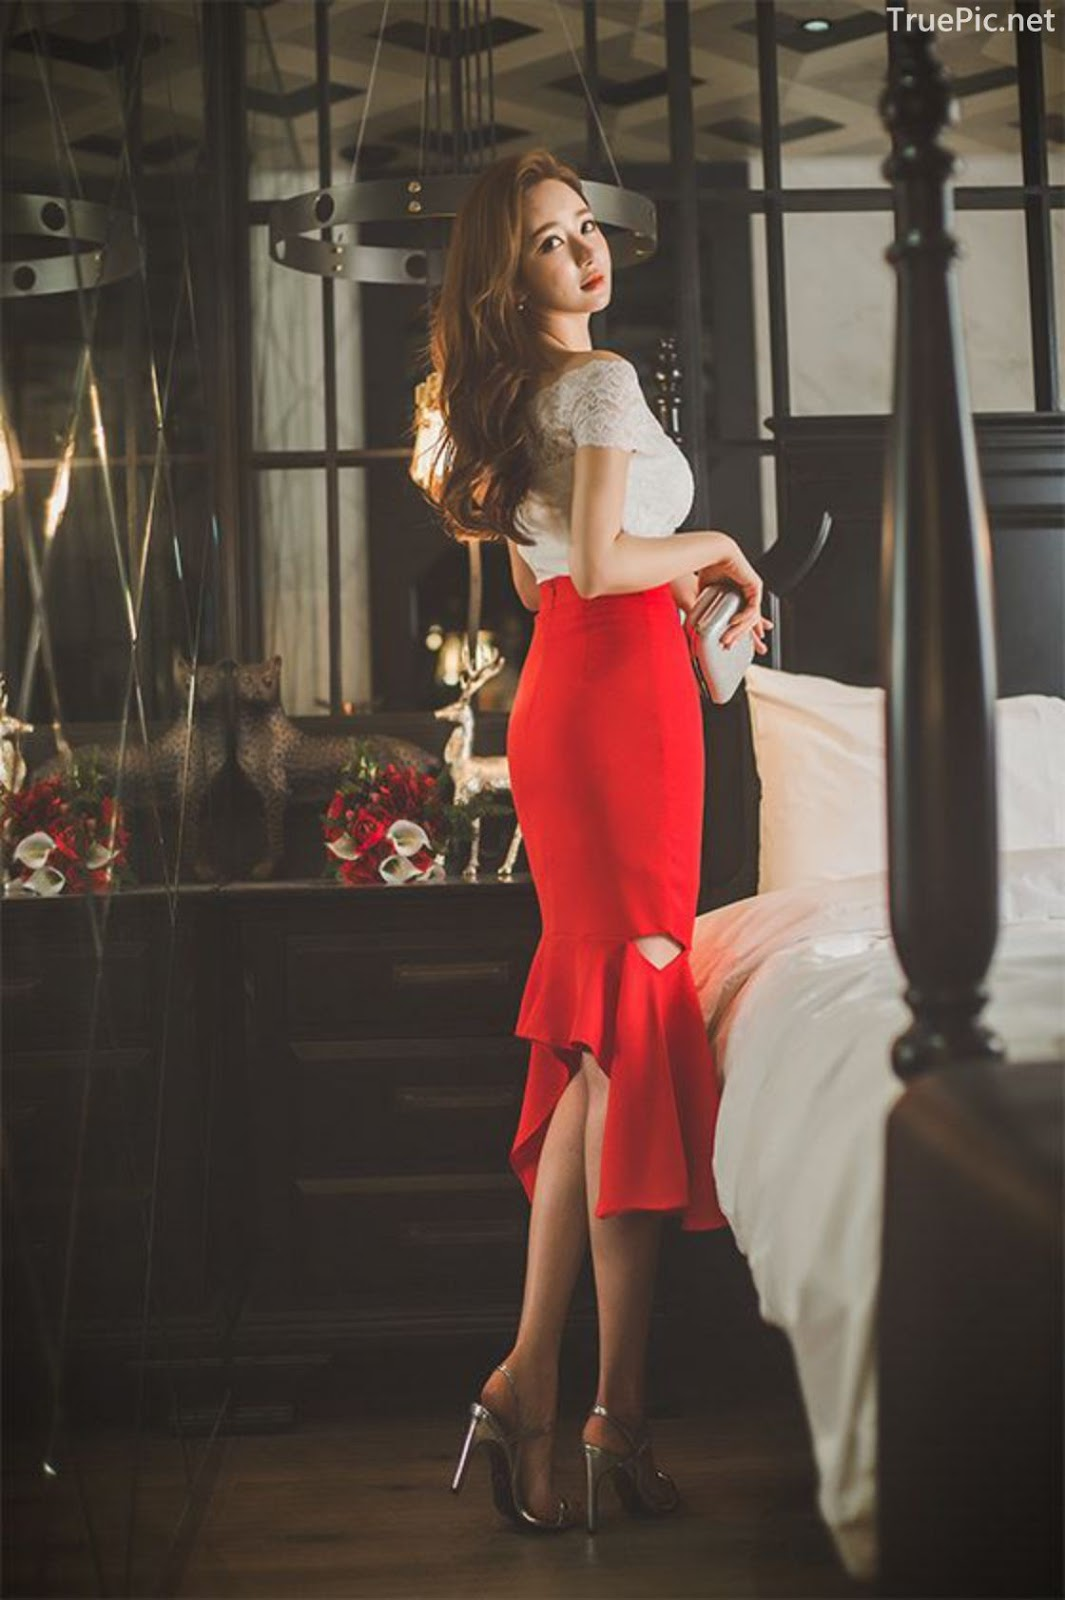 Lee Yeon Jeong - Indoor Photoshoot Collection - Korean fashion model - Part 5 - Picture 1